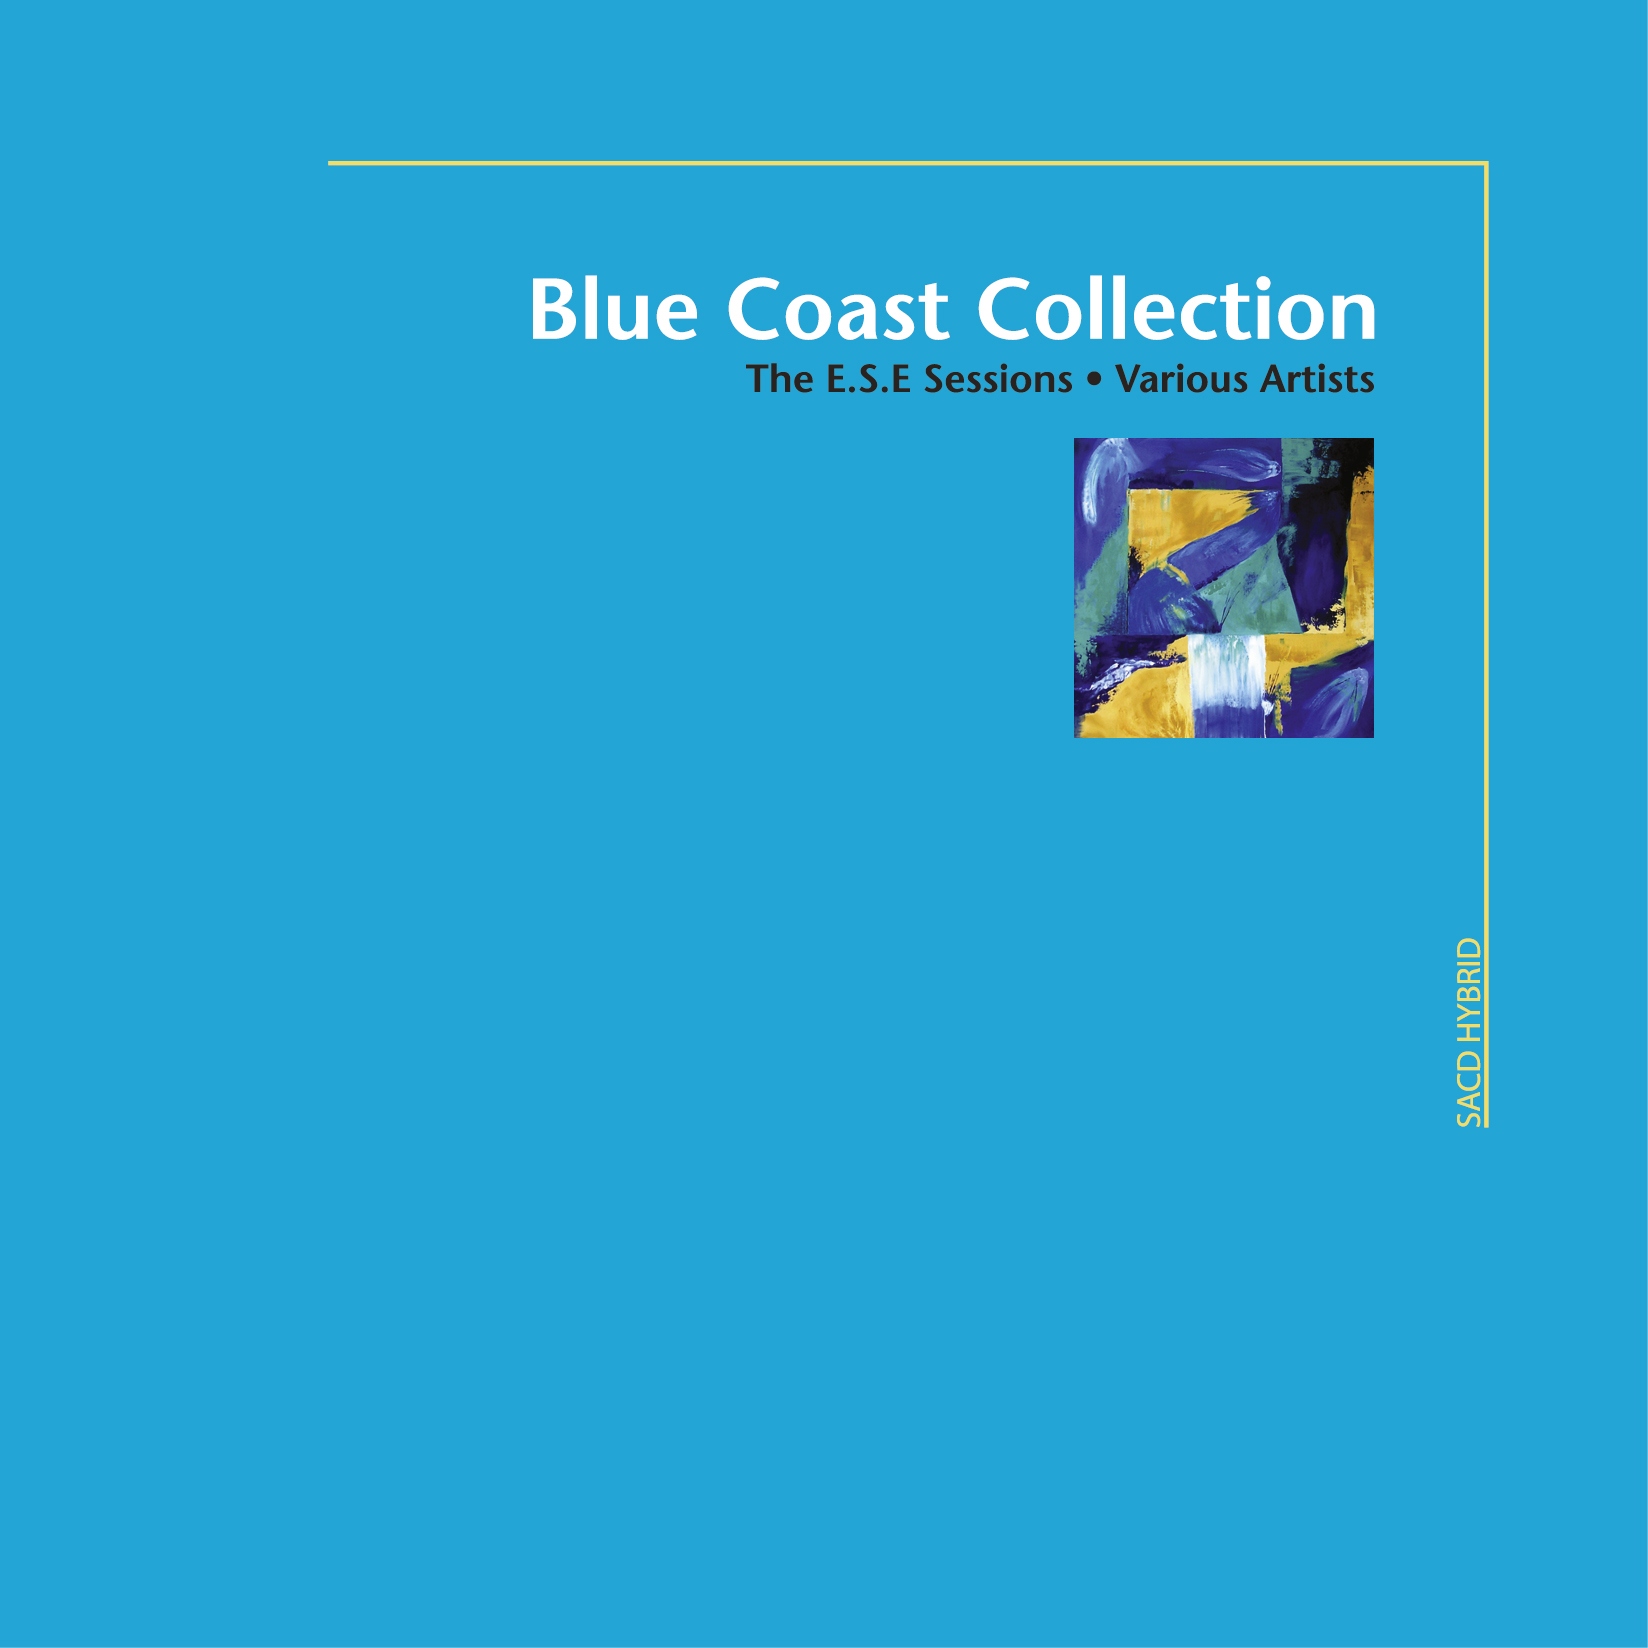 Blue Coast Records - Blue Coast Collection Remastered - Cover Image